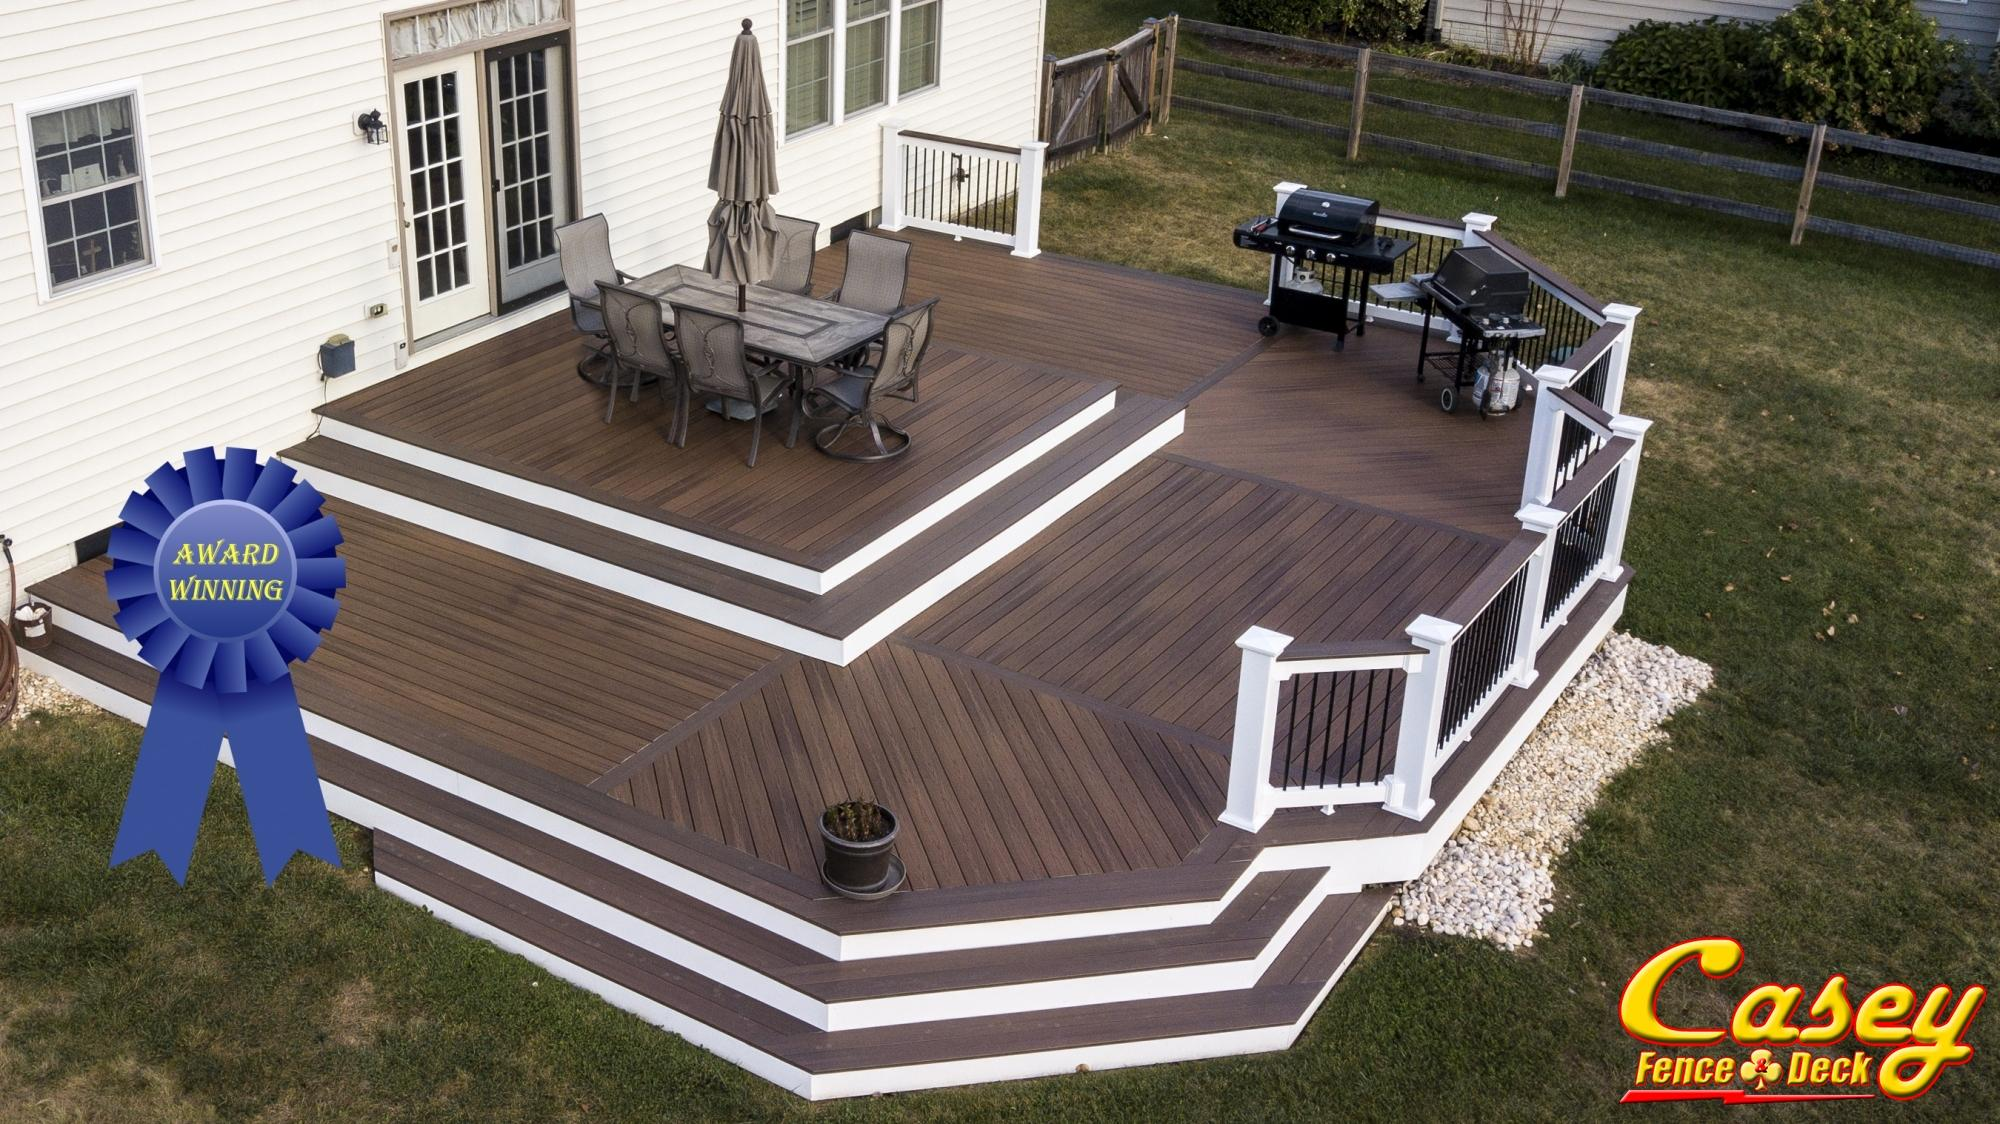 Award Winning Deck And Patio Builder In Frederick Maryland Casey